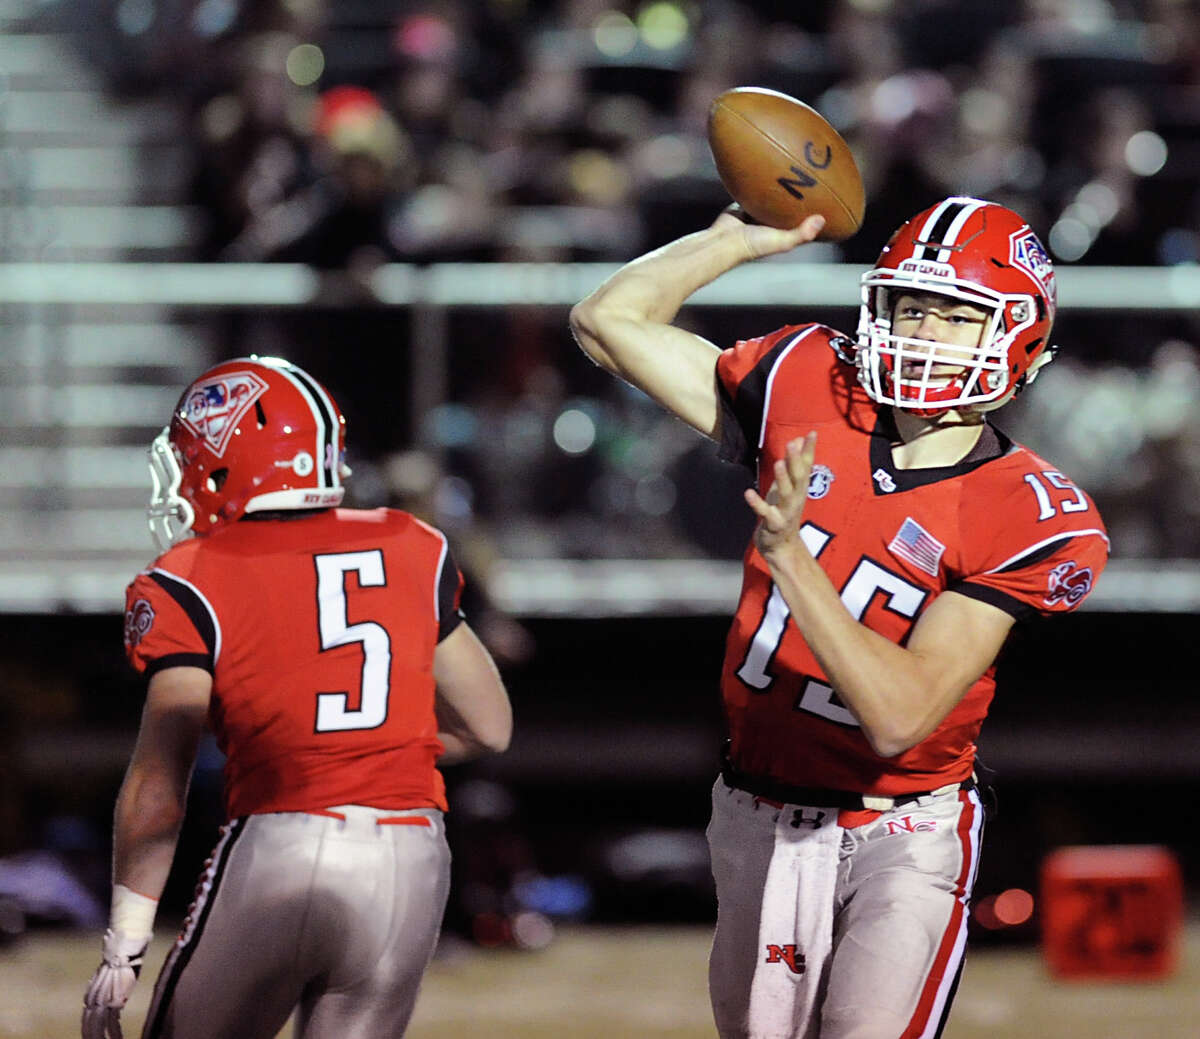 Michael Collins | New Canaan | Quarterback Senior completed 206 of 328 passes for 3,414 yards and a state-record 54 touchdowns to lead the Rams to an 11-1 record and the Class L championship ... Had three-year totals of 6,320 passing yards and 89 touchdowns in 31 games ... Passed for 180 yards and one touchdown in the Class L title game ... CHSCA All-State first team, All-FCIAC first team offense, Walter Camp All-Connecticut offense ... USA Today Connecticut second-team selection.